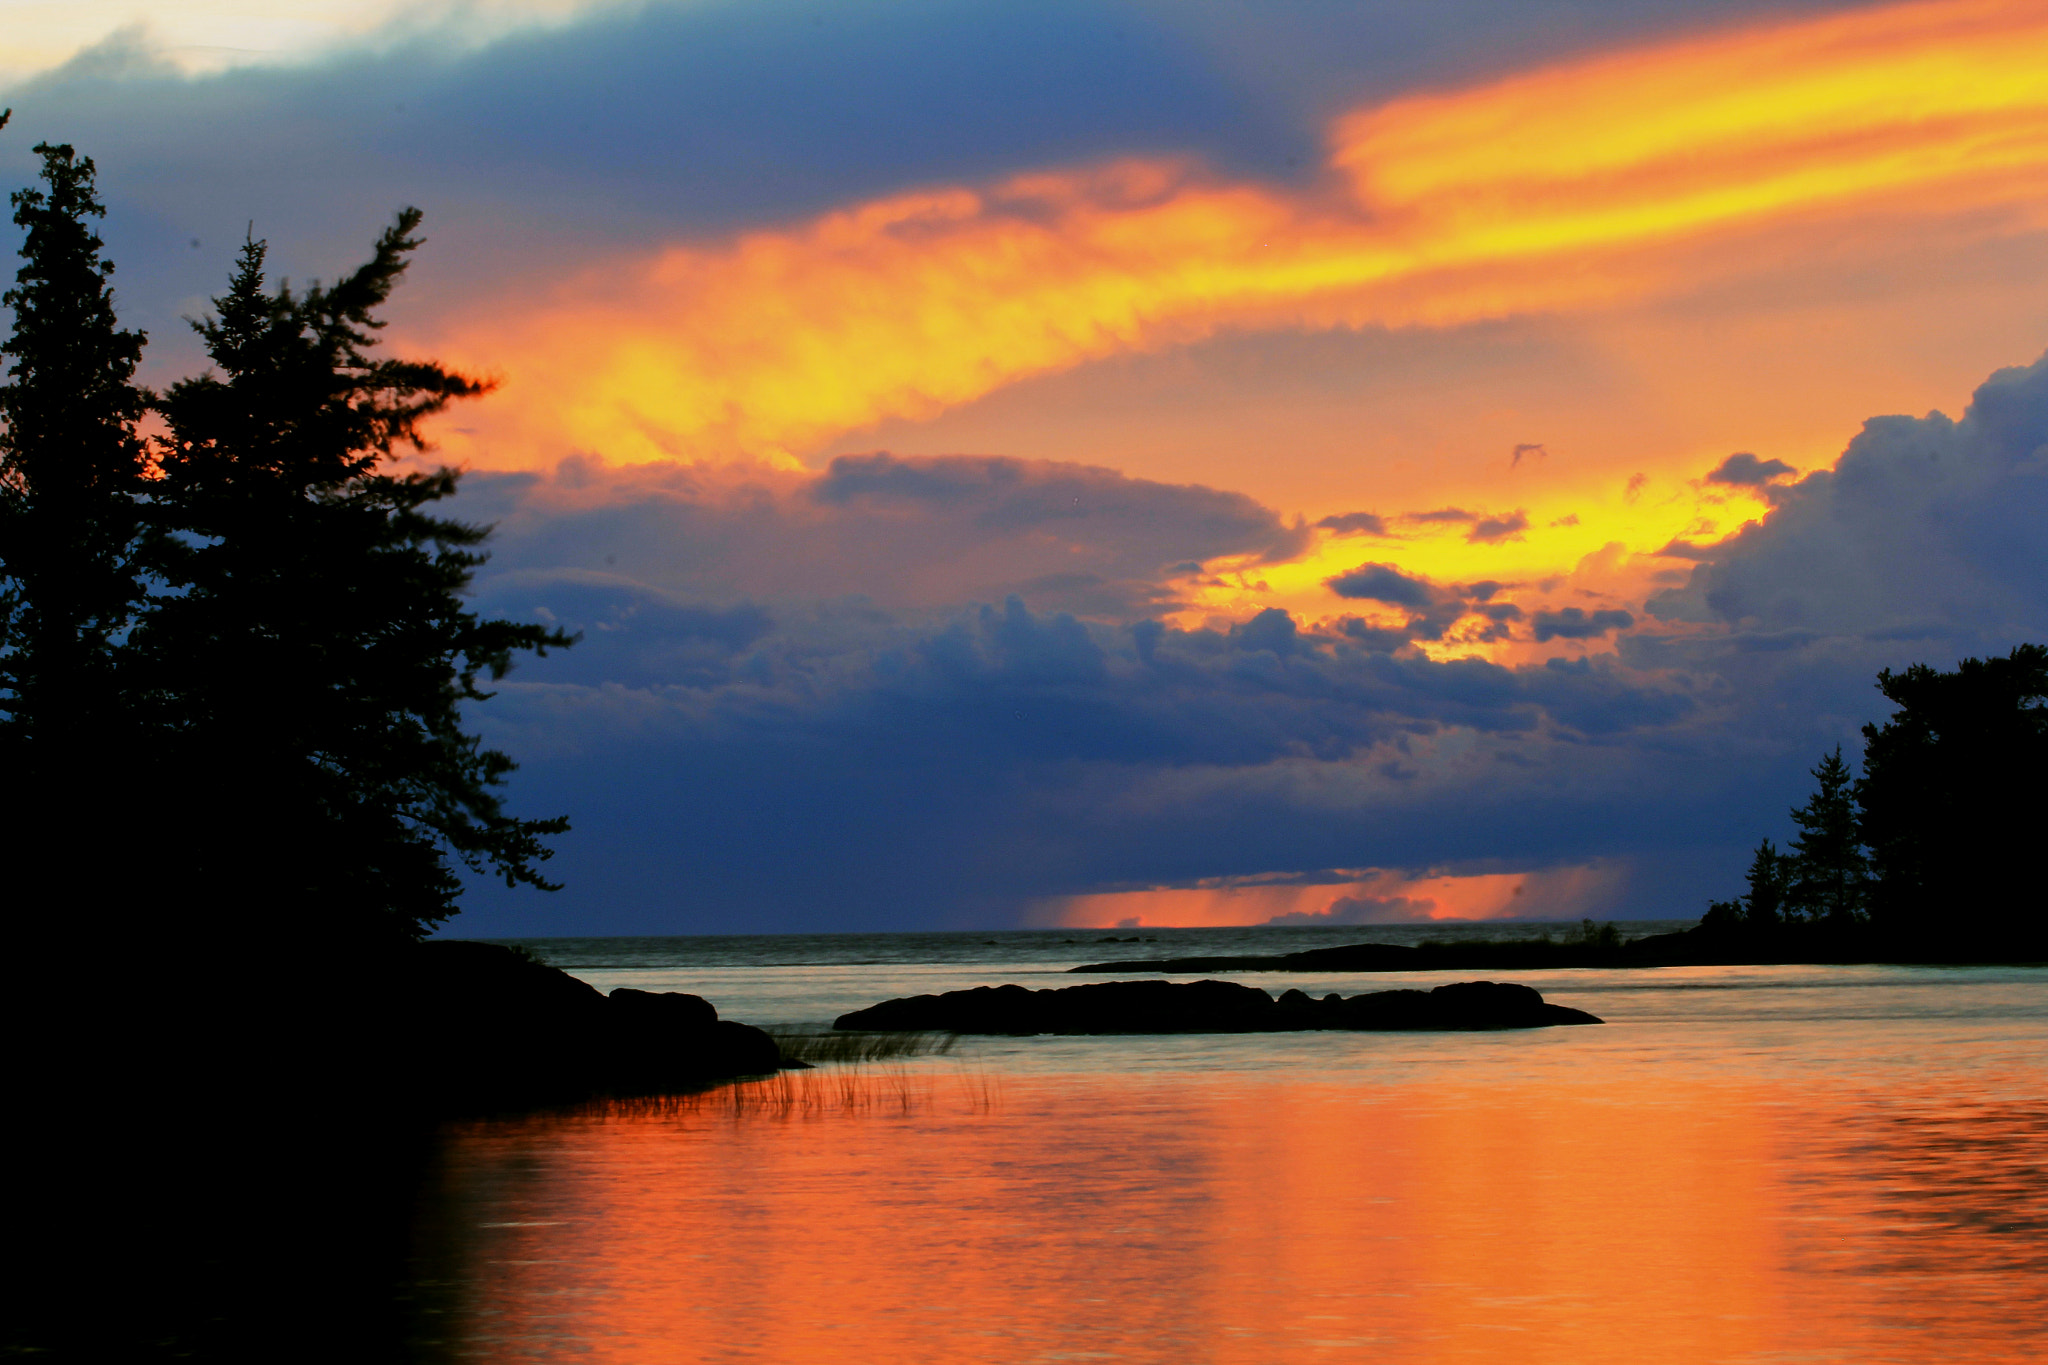 Photograph Sunset with Rain Coming Ahead by Dakx Turcotte on 500px